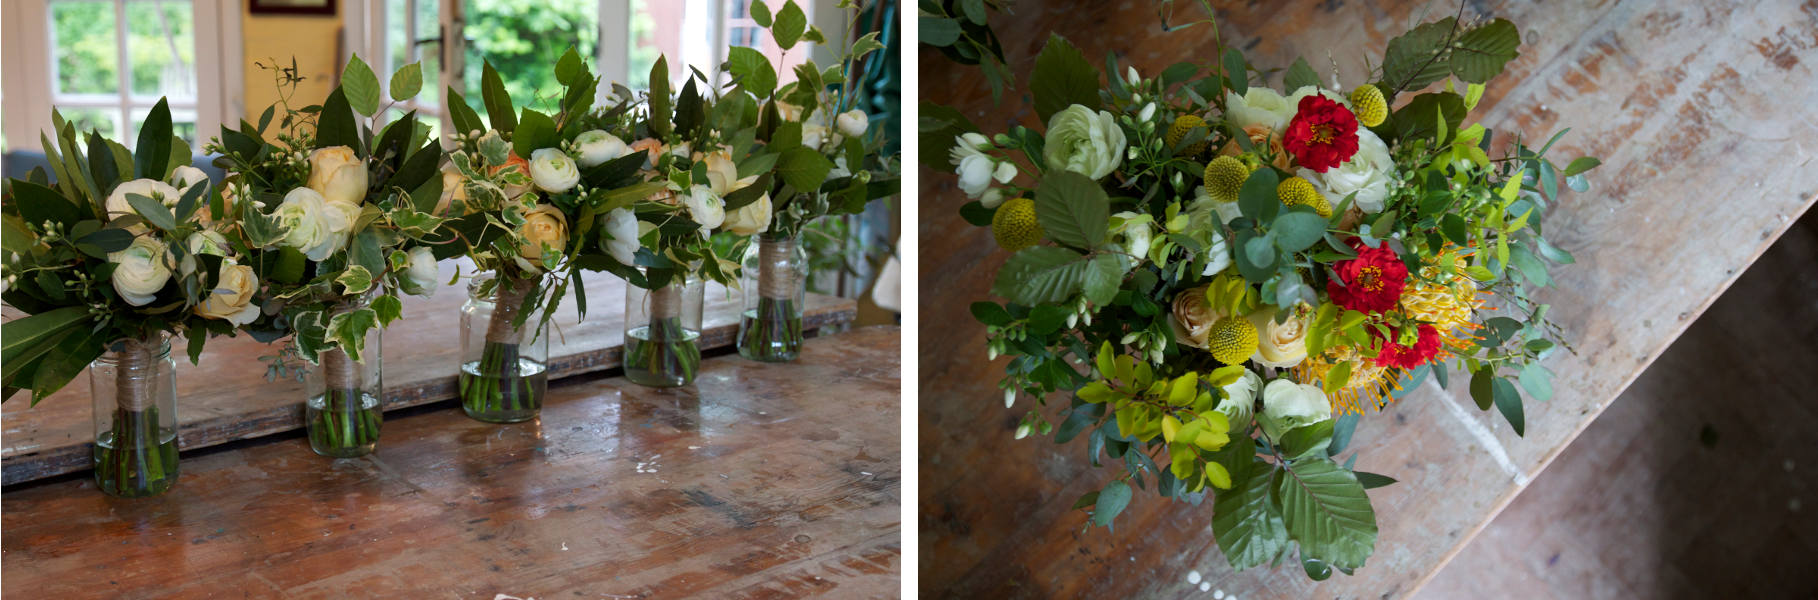 Wedding Flowers East Sussex : Rachel grimes flowers wedding and bouquets in